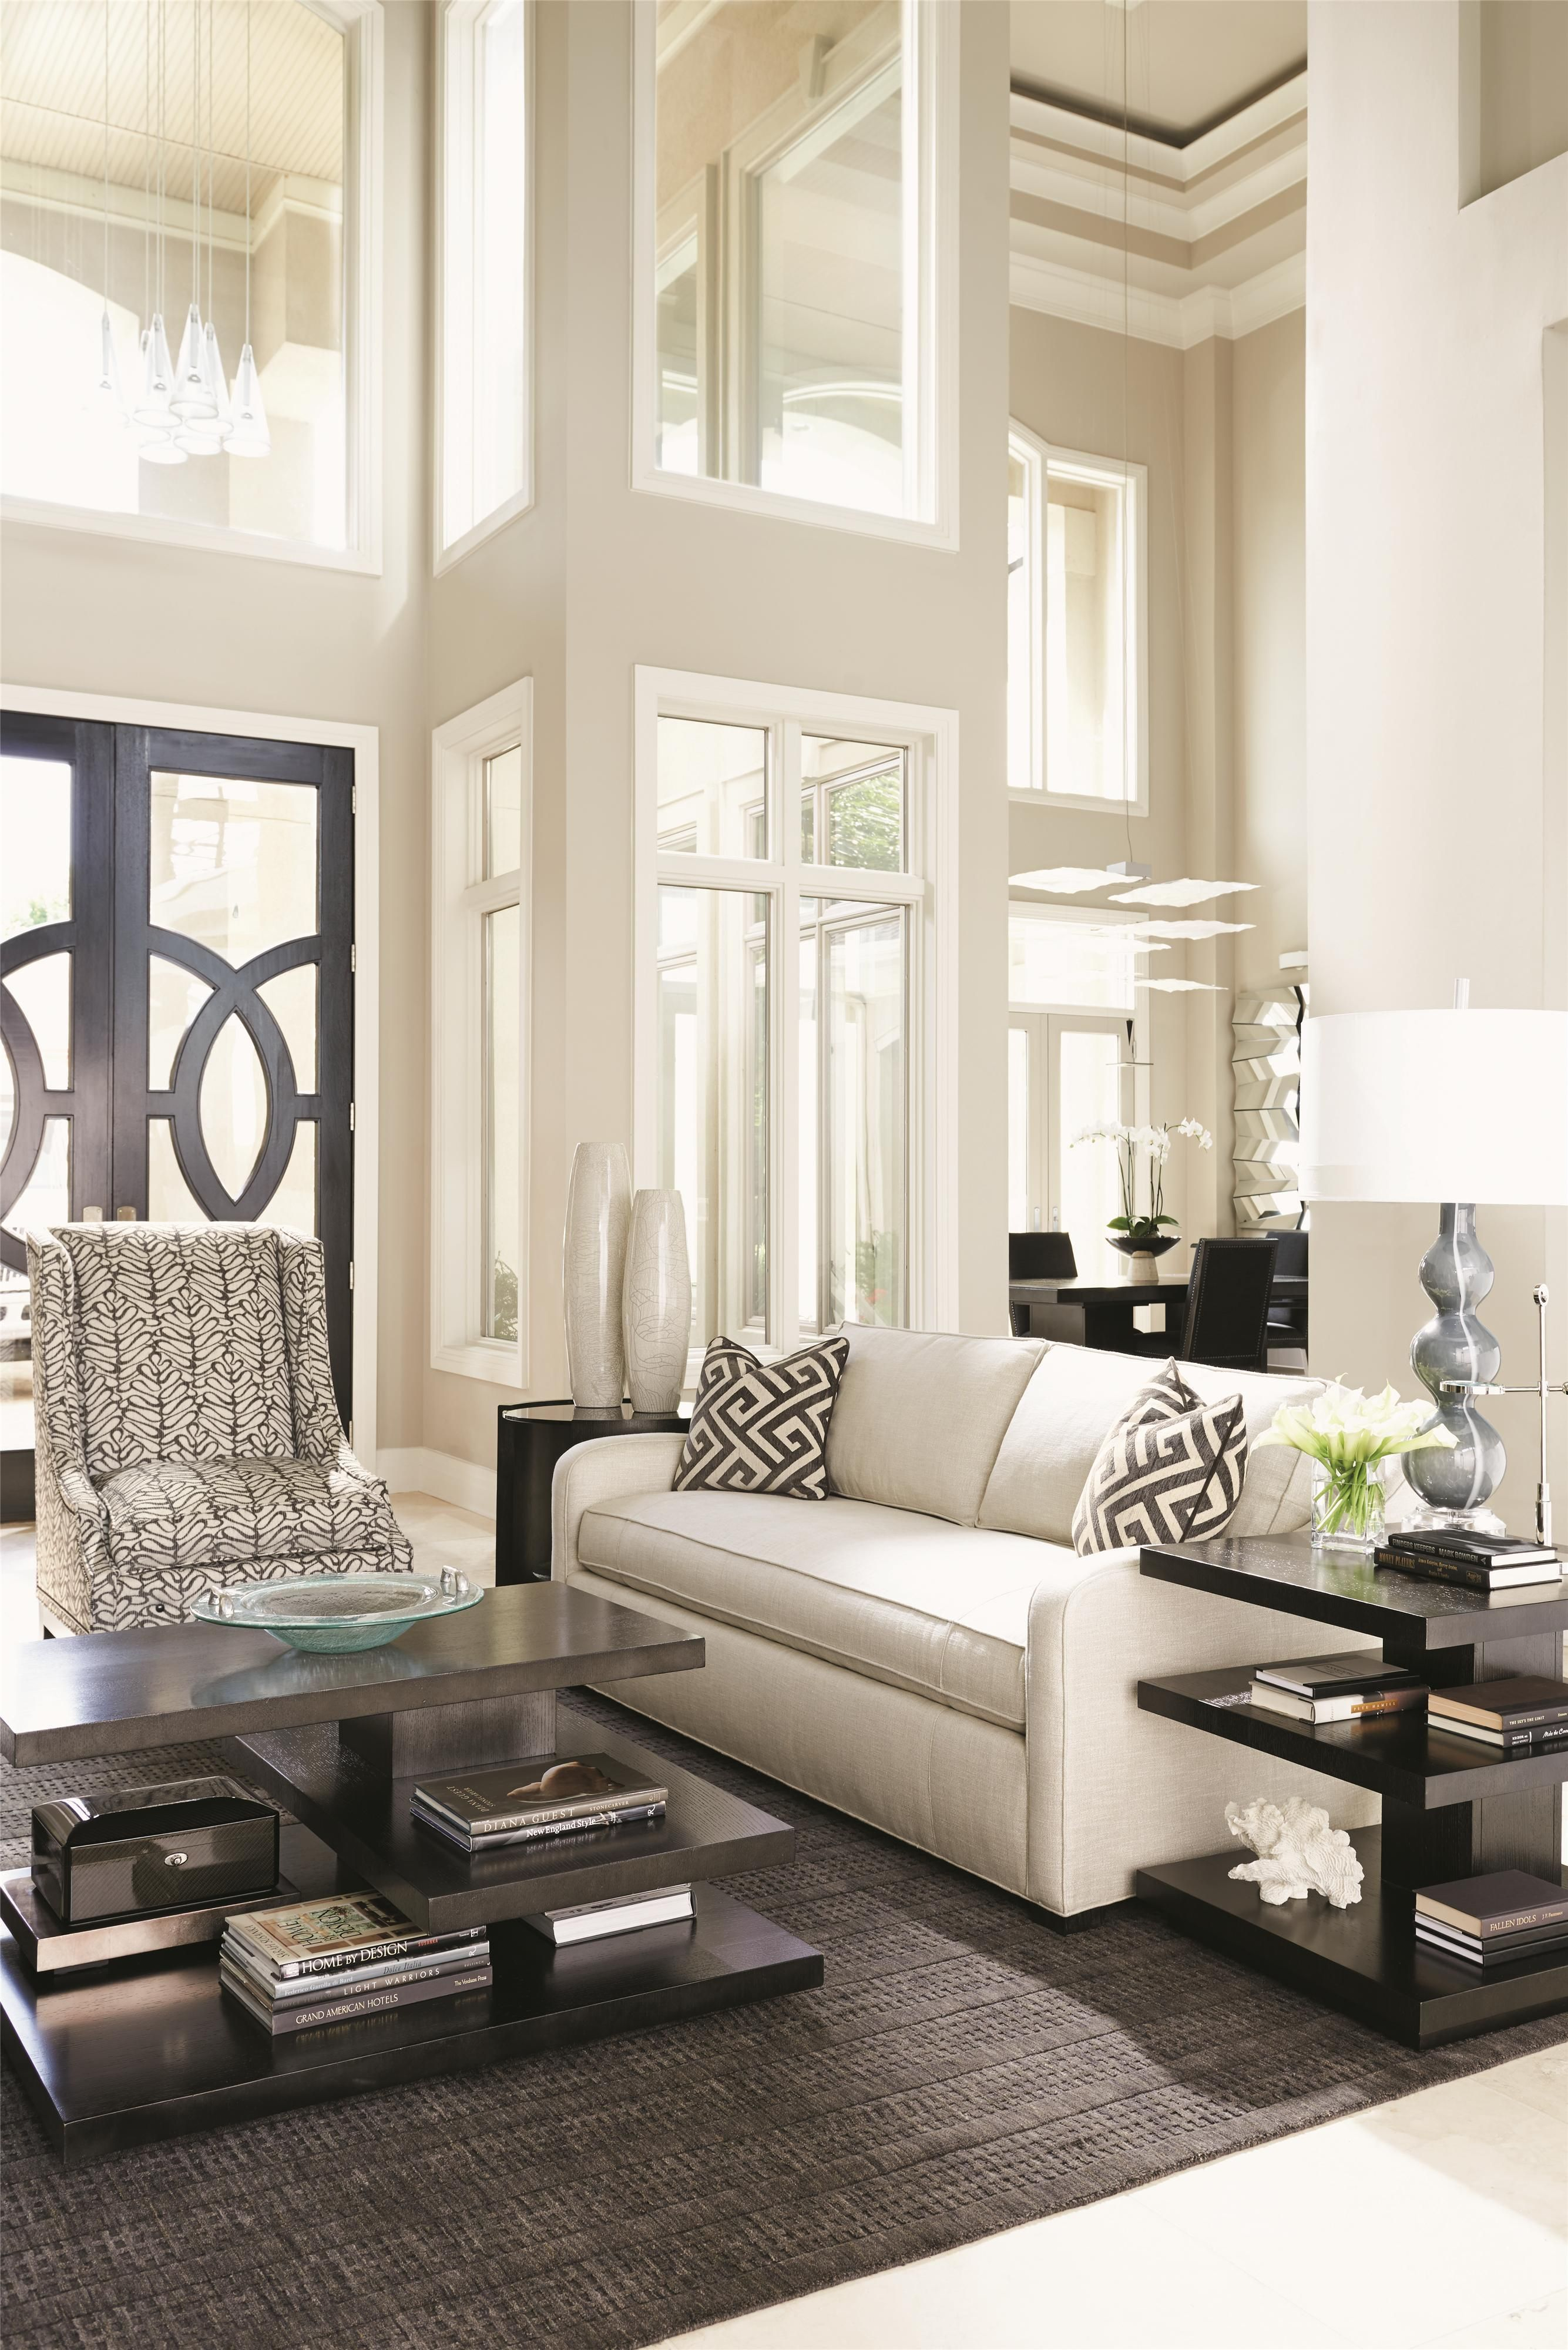 Checklist Of Must Have Home Accessories That Complete Your Look